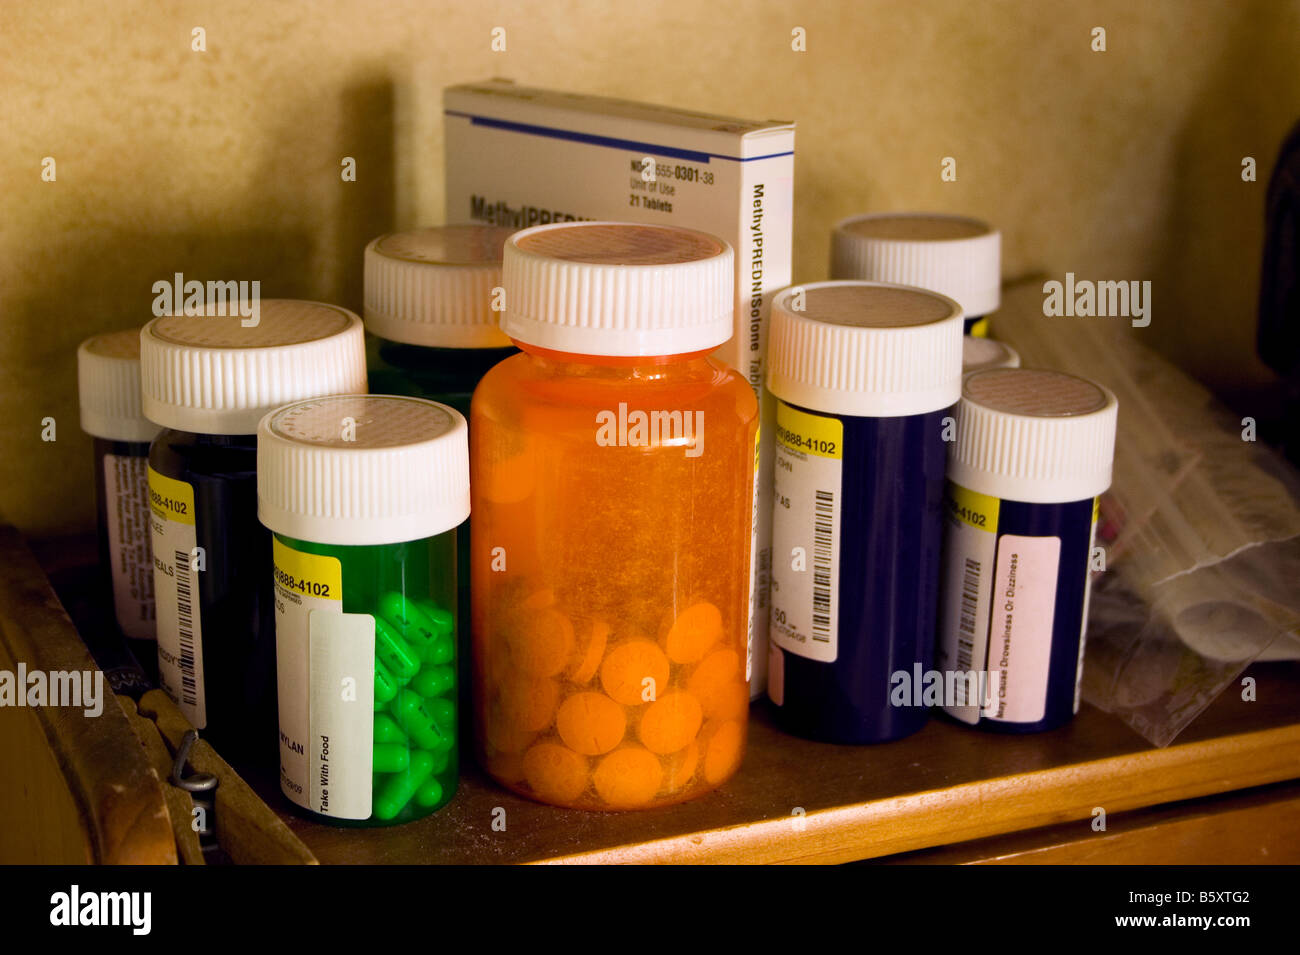 Prescription drugs are stored out and in easy reach for daily use. - Stock Image